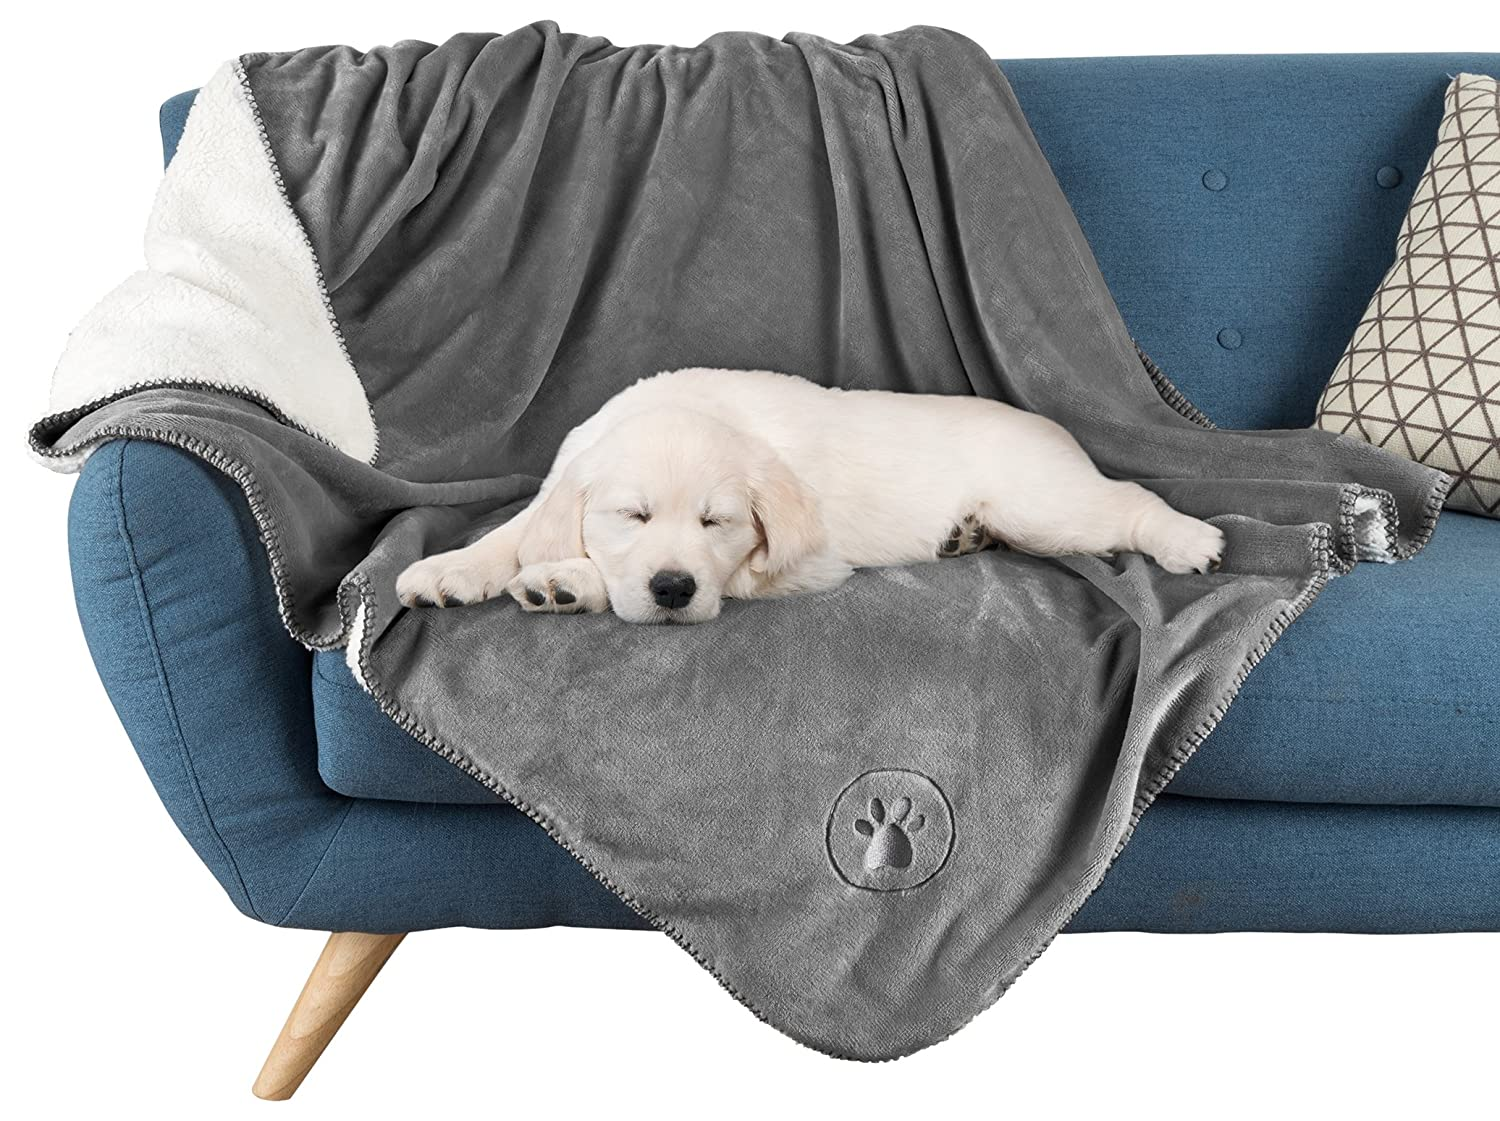 PETMAKER Waterproof Pet Blankets - Soft Plush Throw Protects Couch, Chairs, Car, or Bed from Spills, Stains, or Pet Fur-Machine Washable